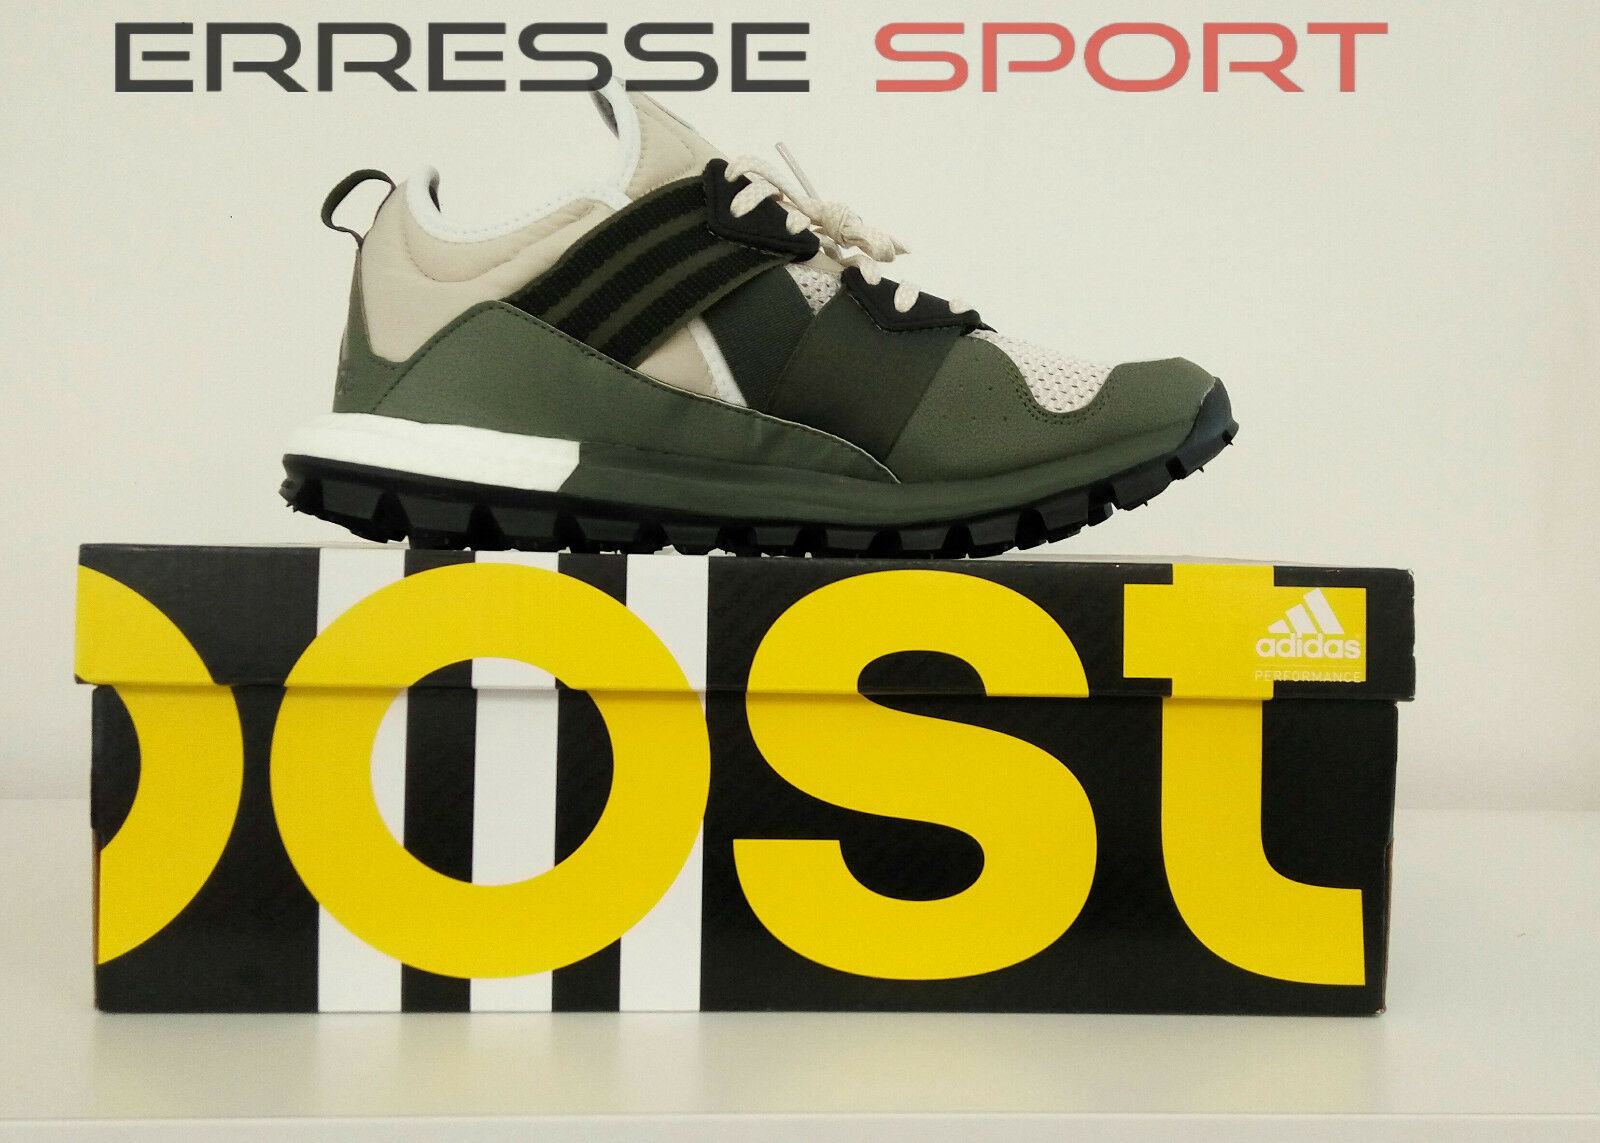 Adidas Response Boost Boost Boost TR M, bb3935, Trail, cross, hombre Zapatos running hombre 1a5f35